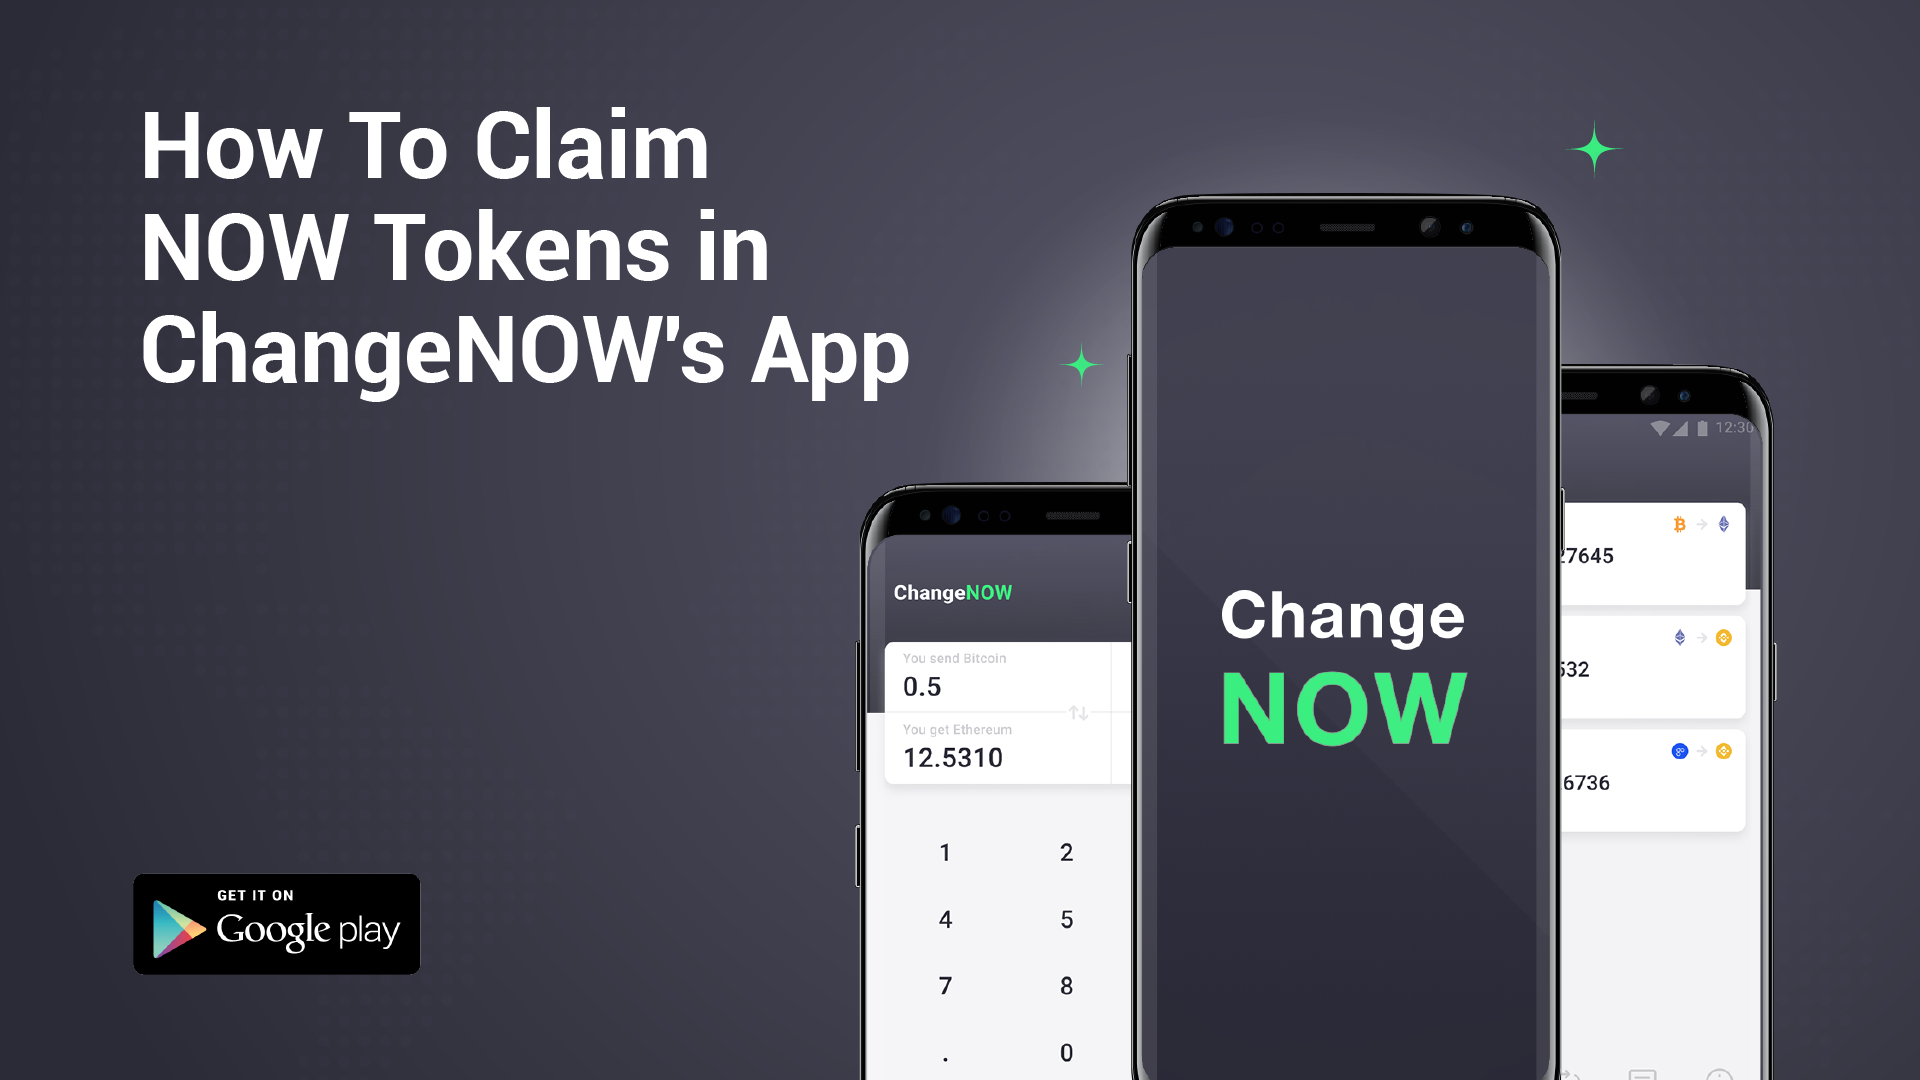 How to claim NOW tokens for free in ChangeNOW's brand new Android app [GUIDE]